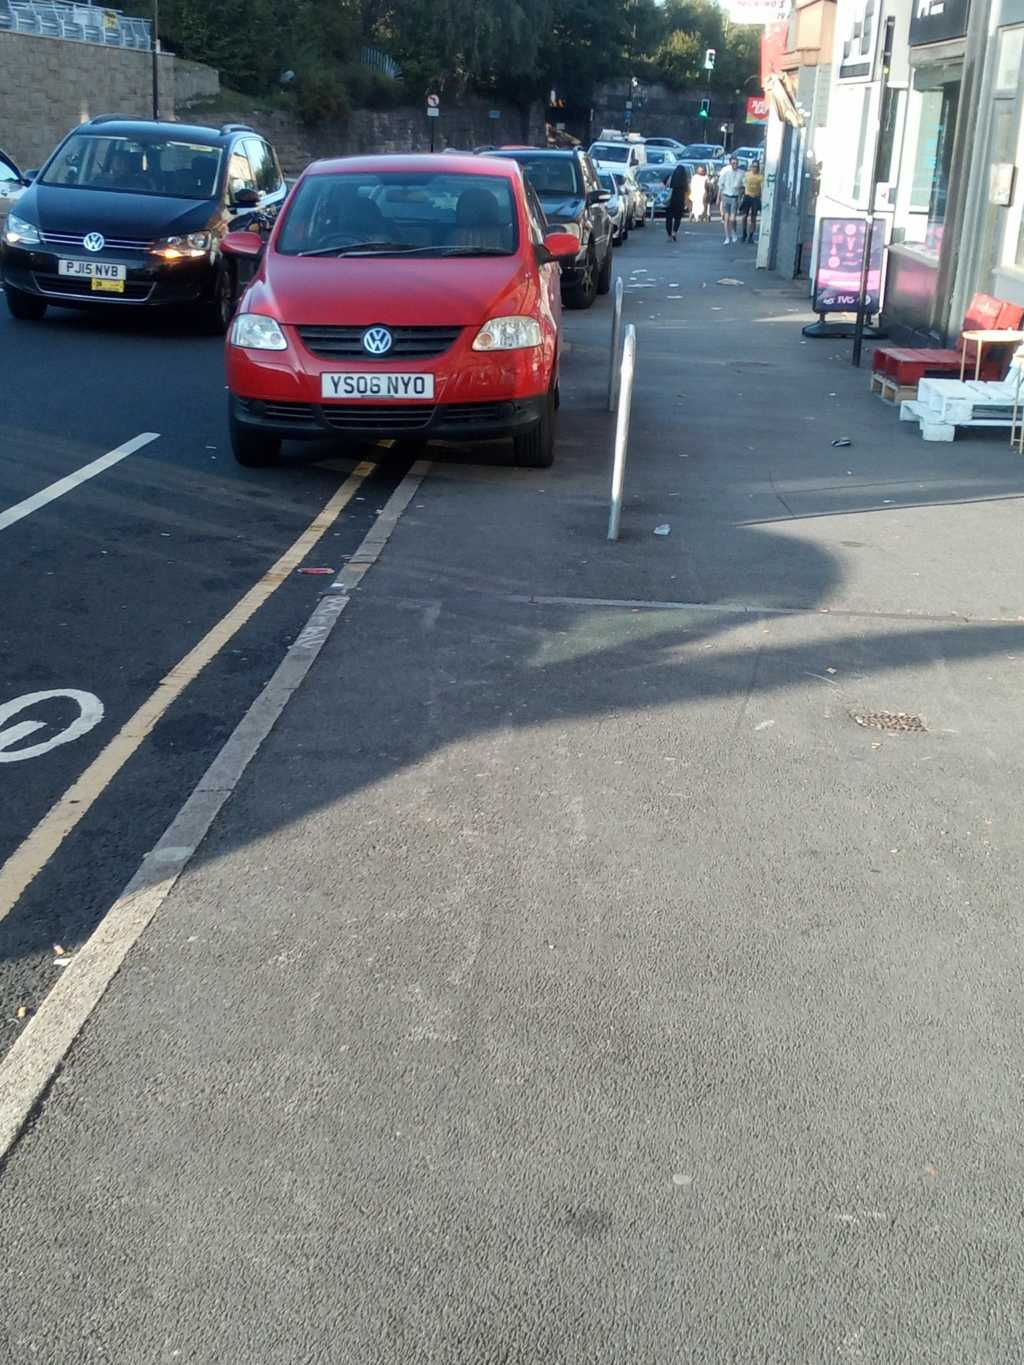 YS06 NYO displaying Inconsiderate Parking